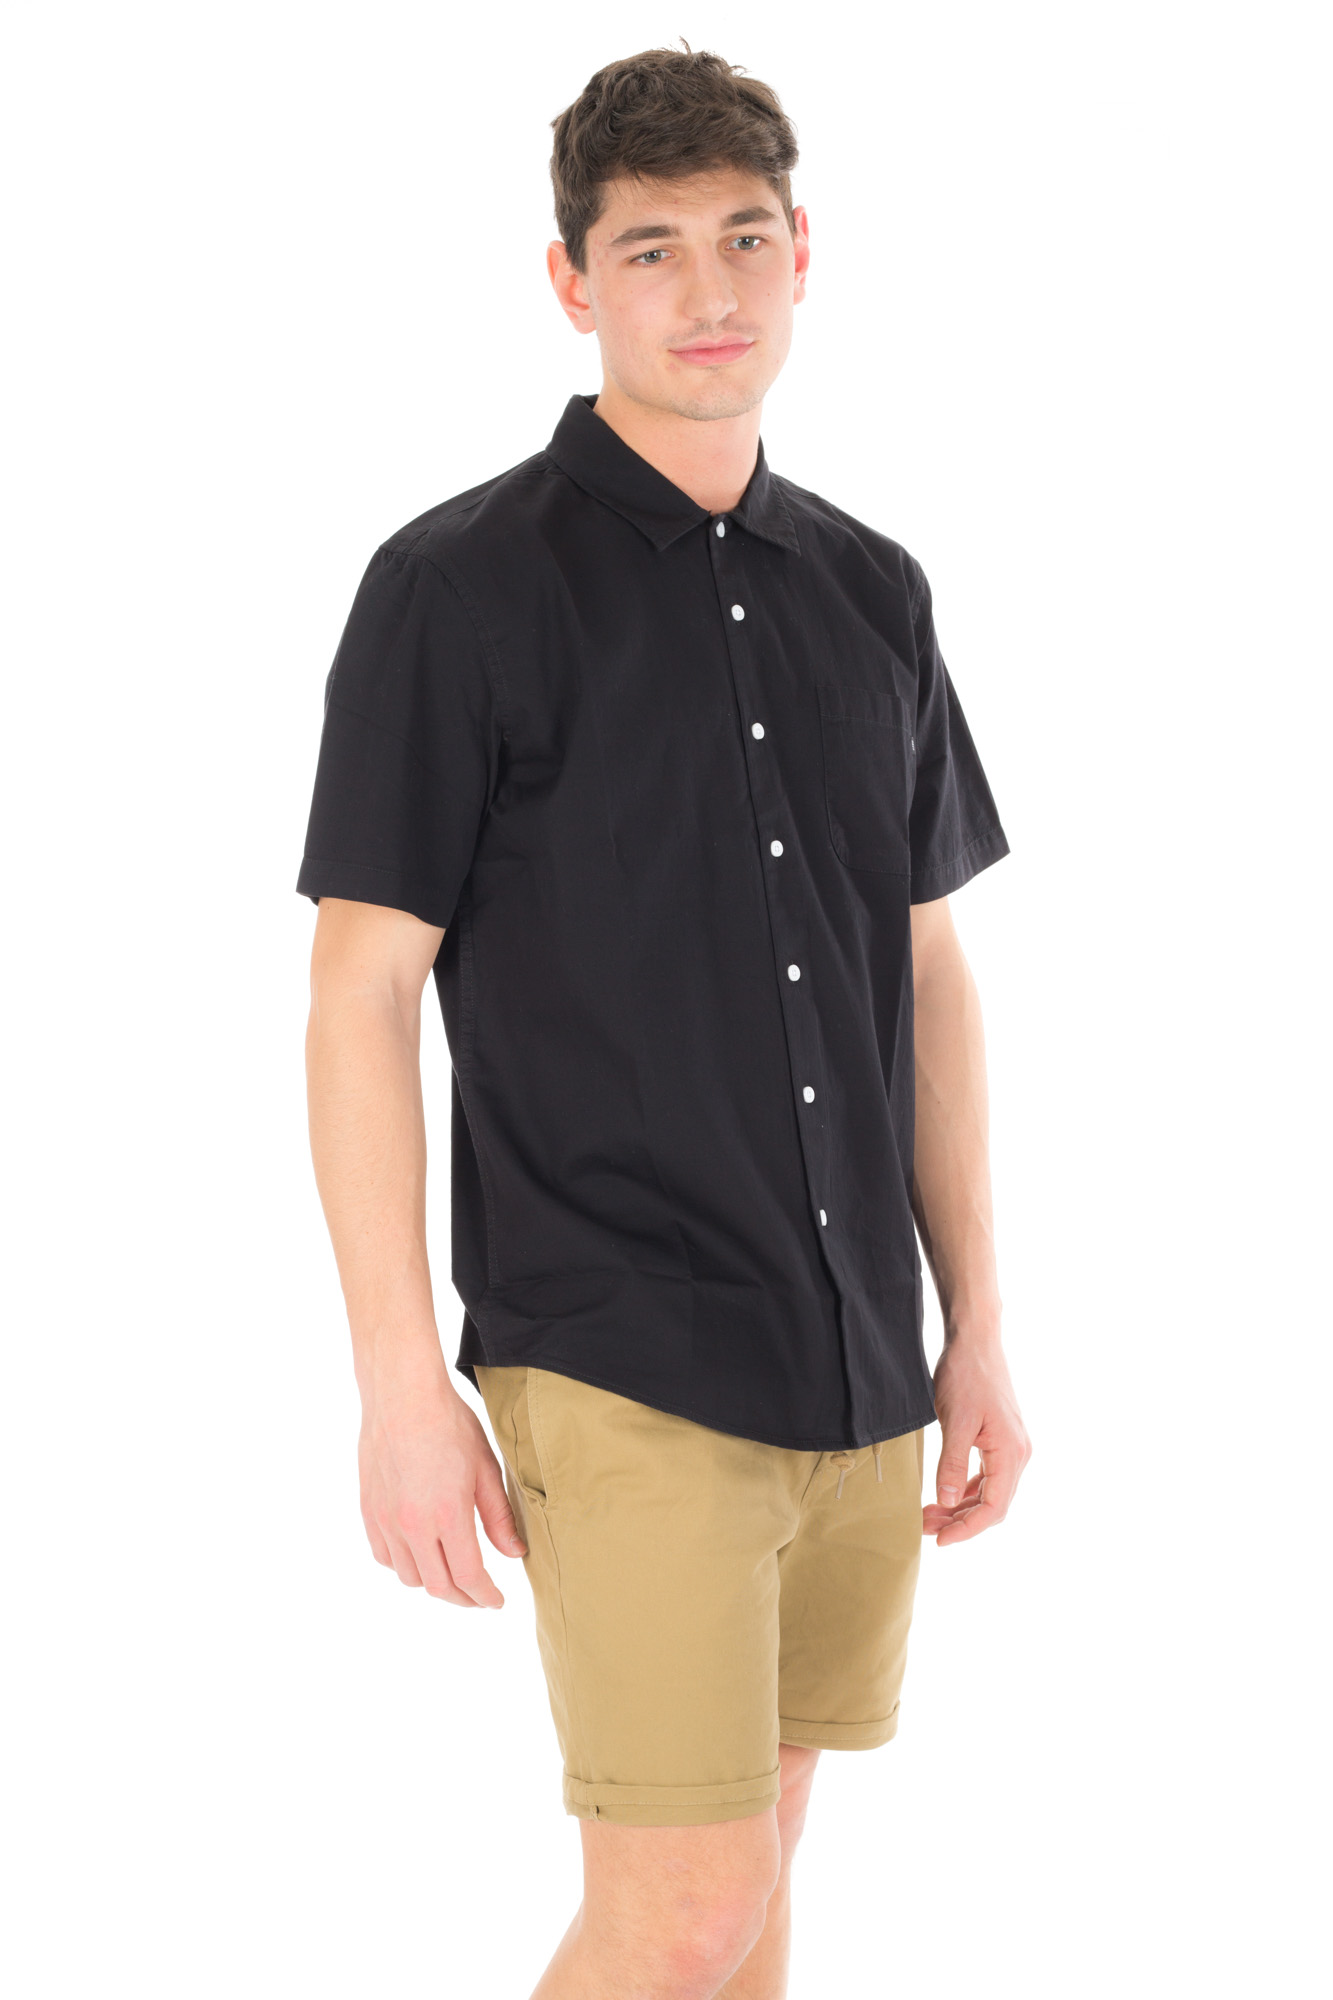 Obey - Black Shirt with embroidery